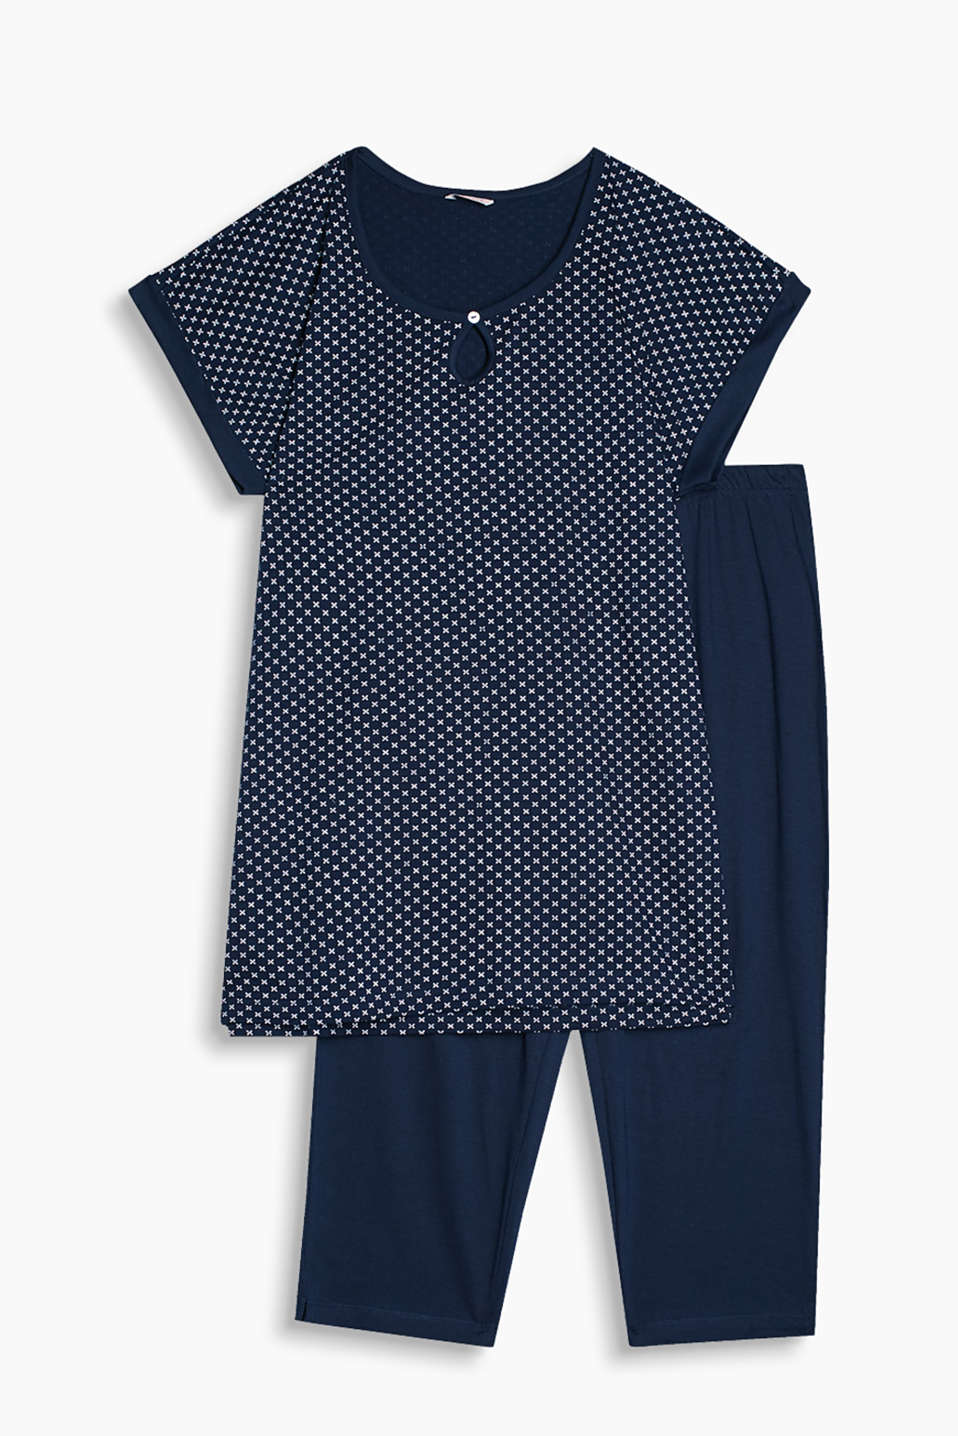 Jersey pyjamas with a casual printed top and plain coloured Capris in pure cotton